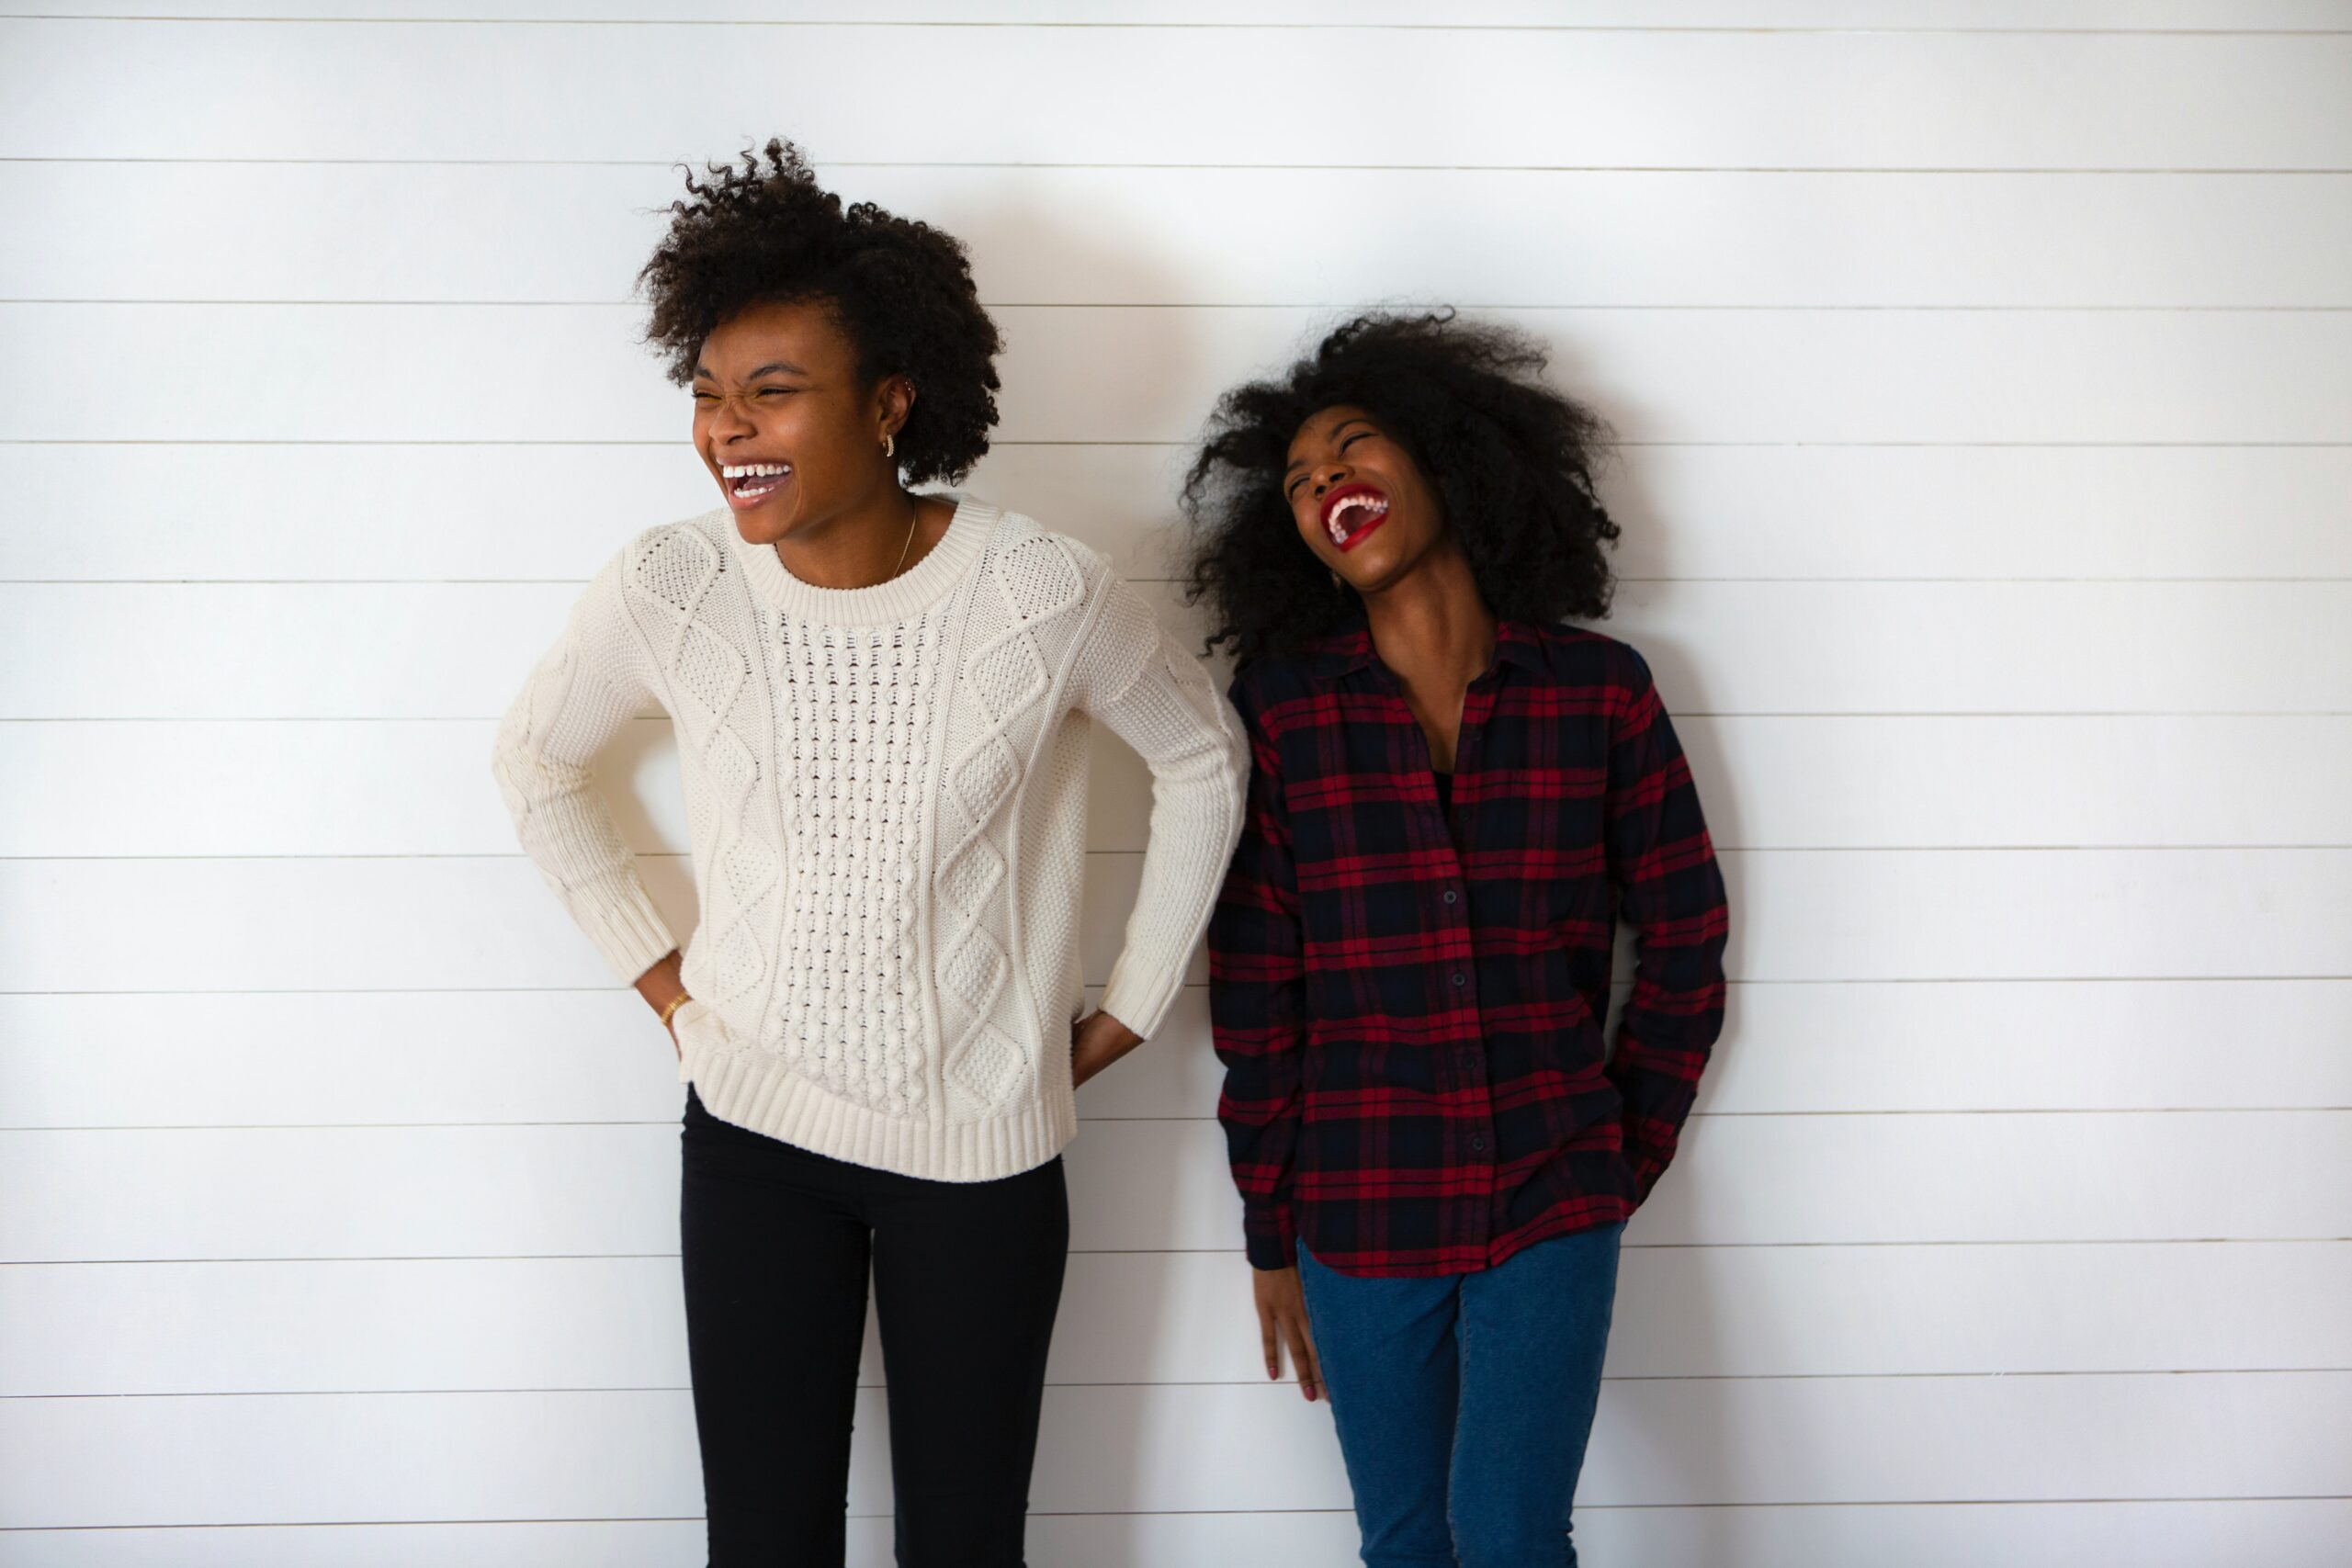 10 Things You Should Say Goodbye To In Your 20s